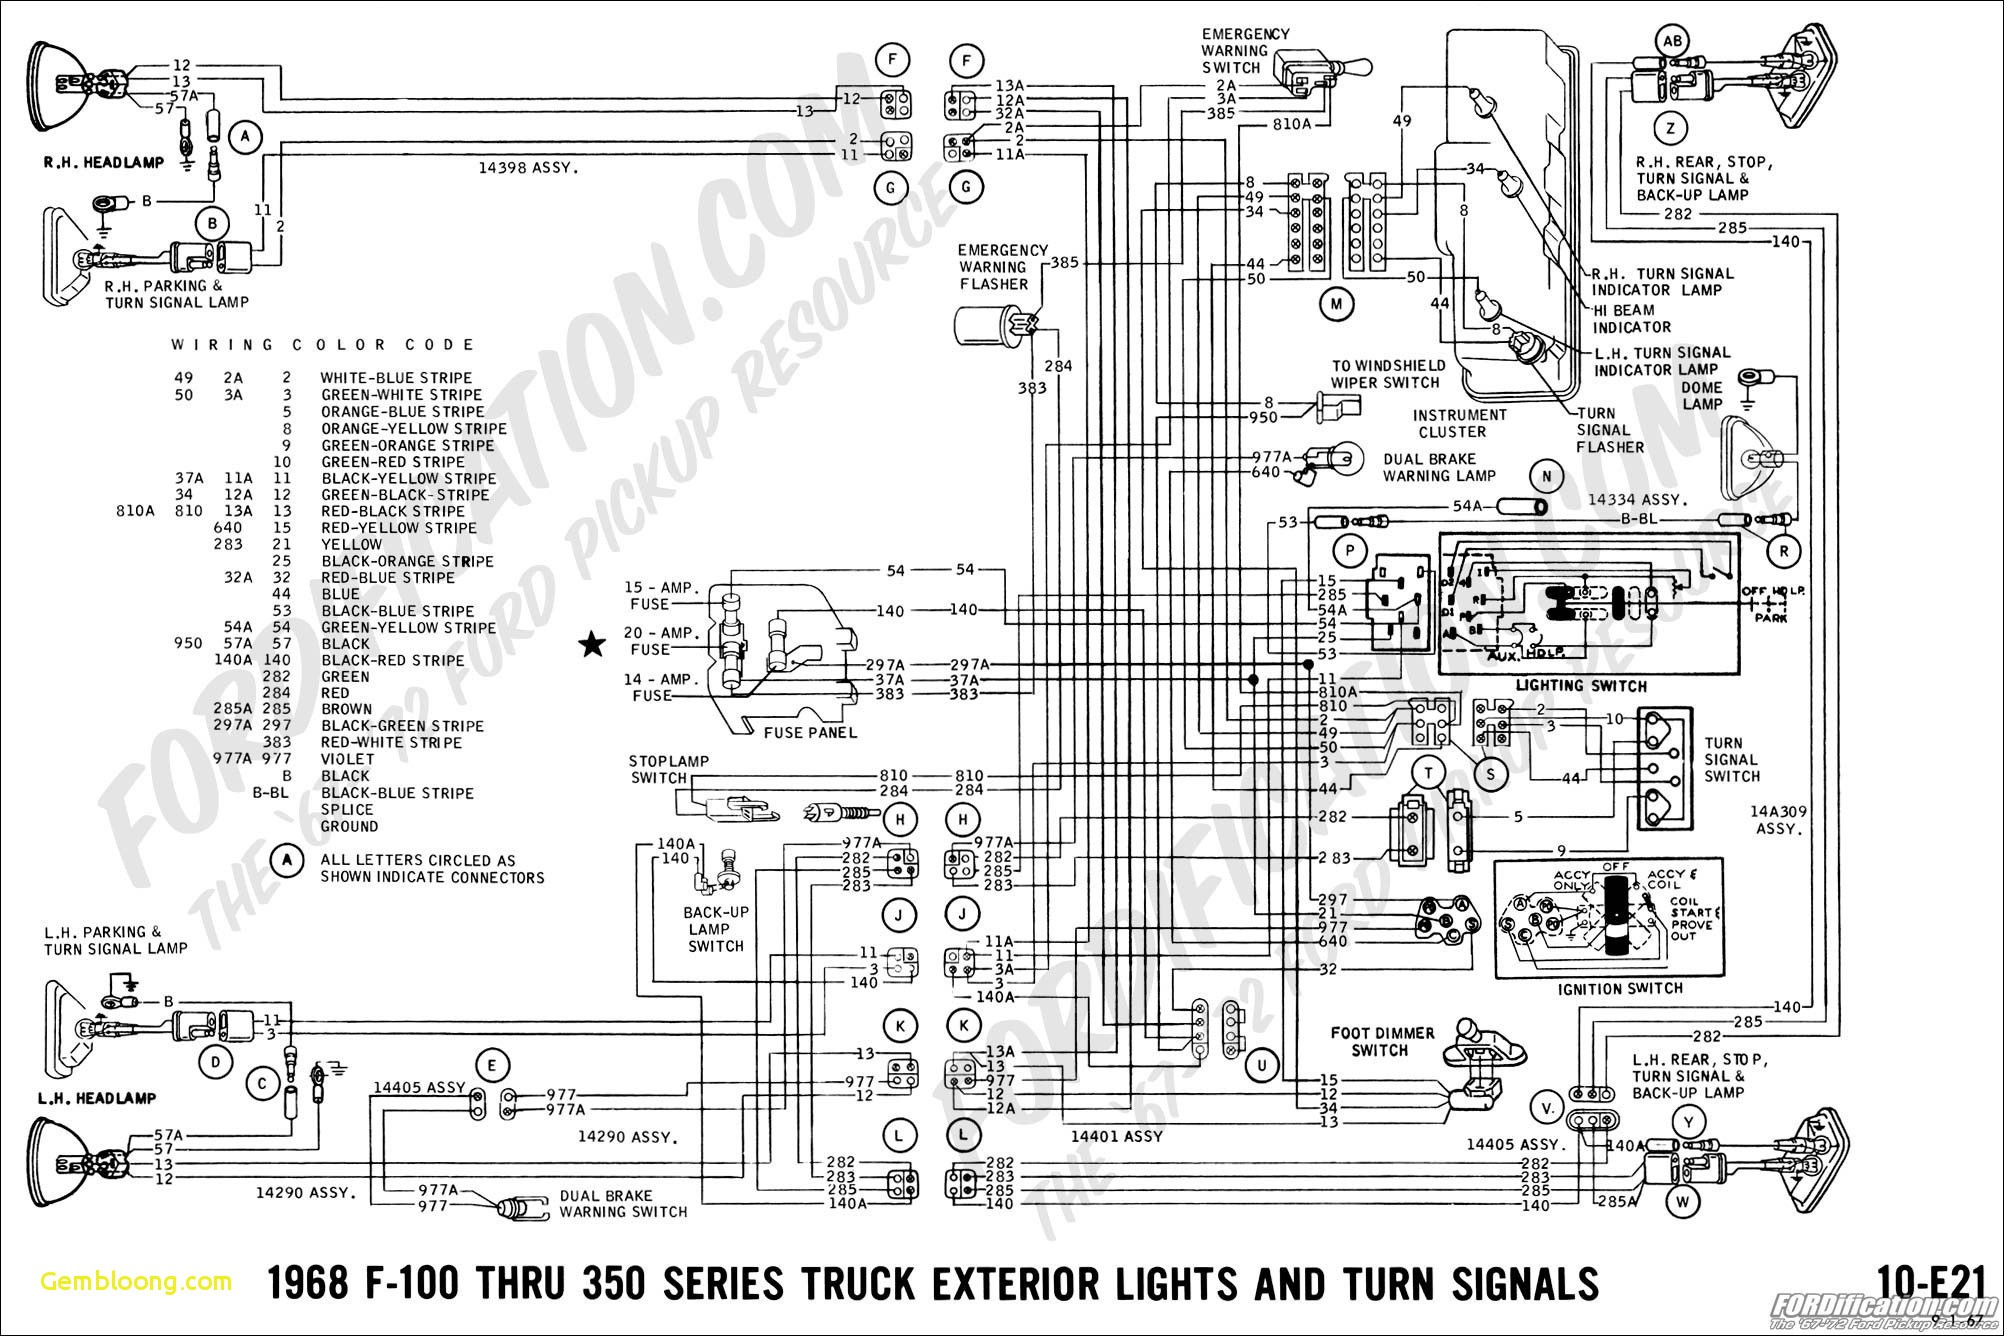 1996 ford F250 Tail Light Wiring Diagram 1978 ford F250 Wiring Diagram Schema Wiring Diagram Of 1996 ford F250 Tail Light Wiring Diagram 1996 ford F250 Trailer Wiring Harness Wiring Diagram Week